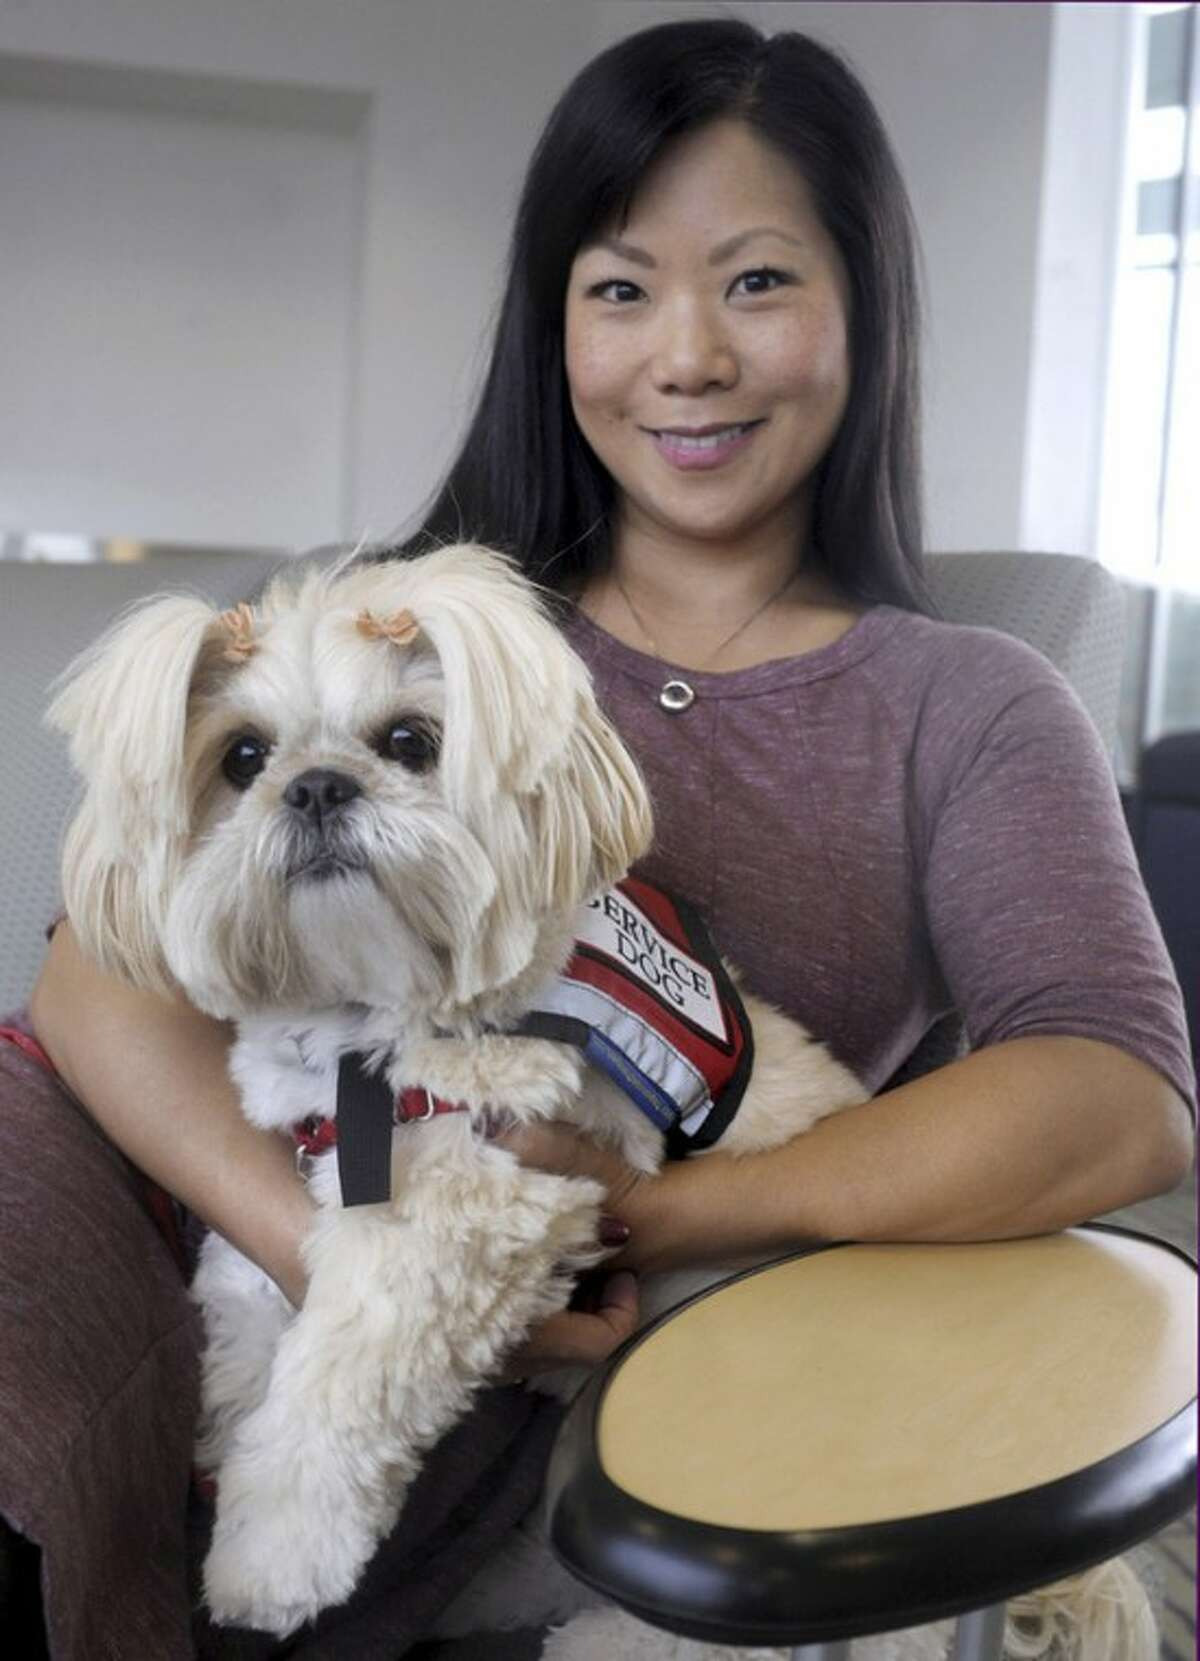 AP Photo/Journal Inquirer, Jim Michaud Staff Sgt. Sandra Lee poses for a photograph with her service dog Emma in Manchester.